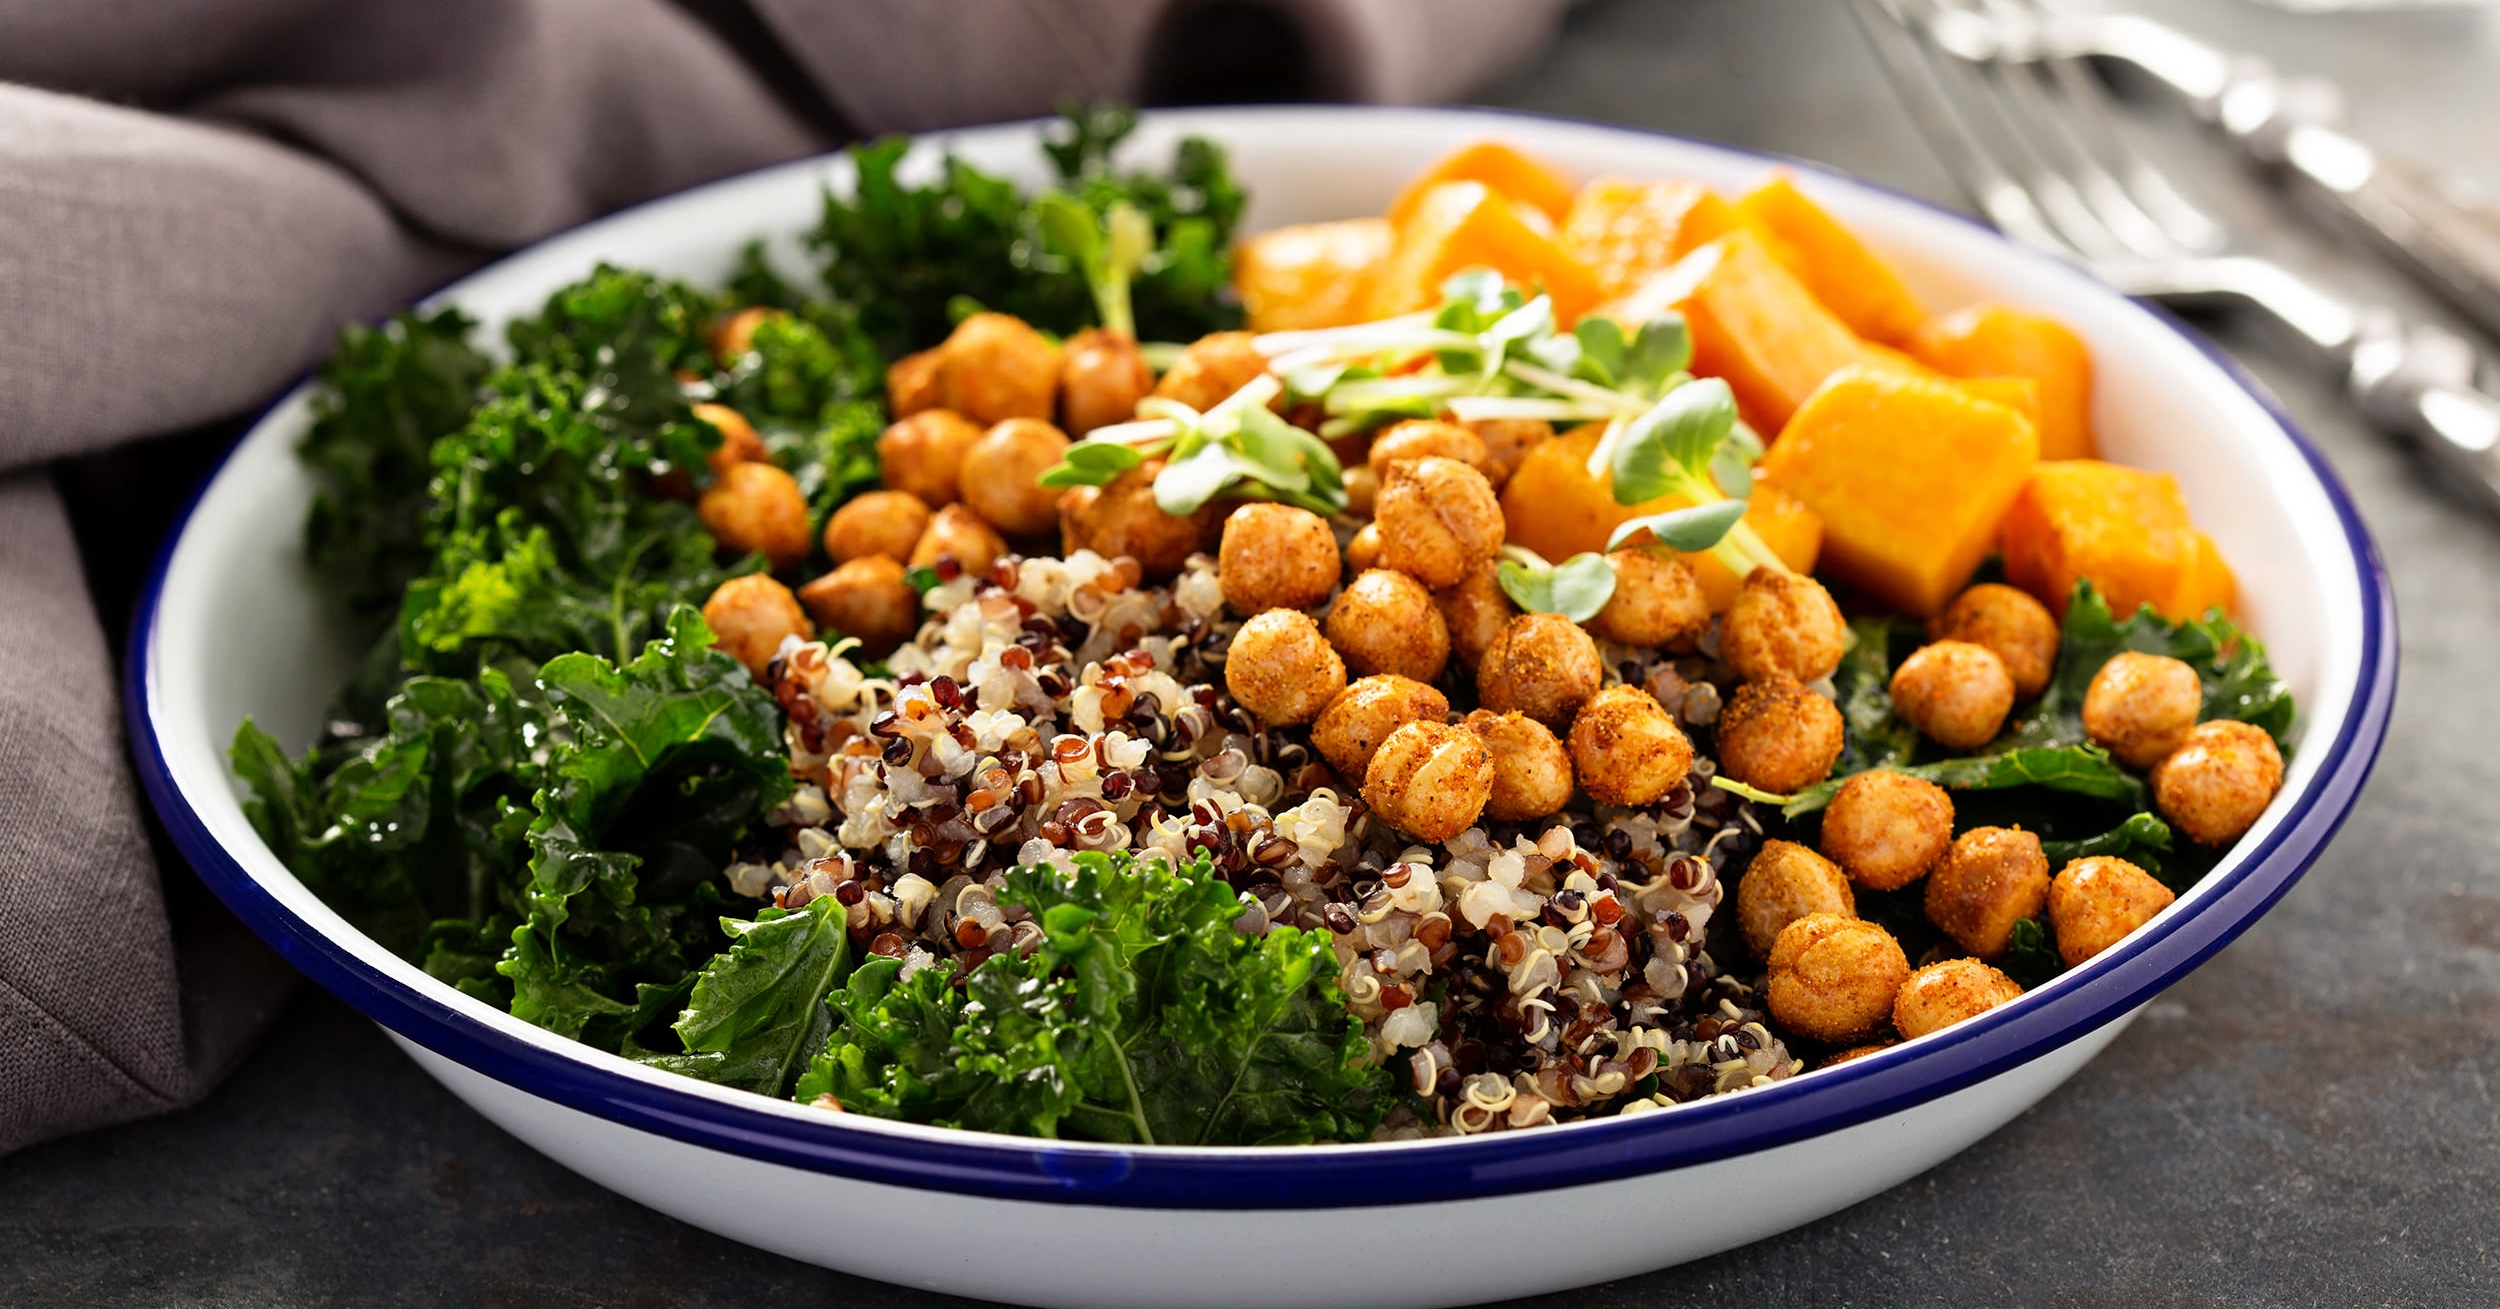 Plant-based lunch quinoa bowl, healthy vegan protein with lentils, beans, nuts, hemp seeds, and vegetables.